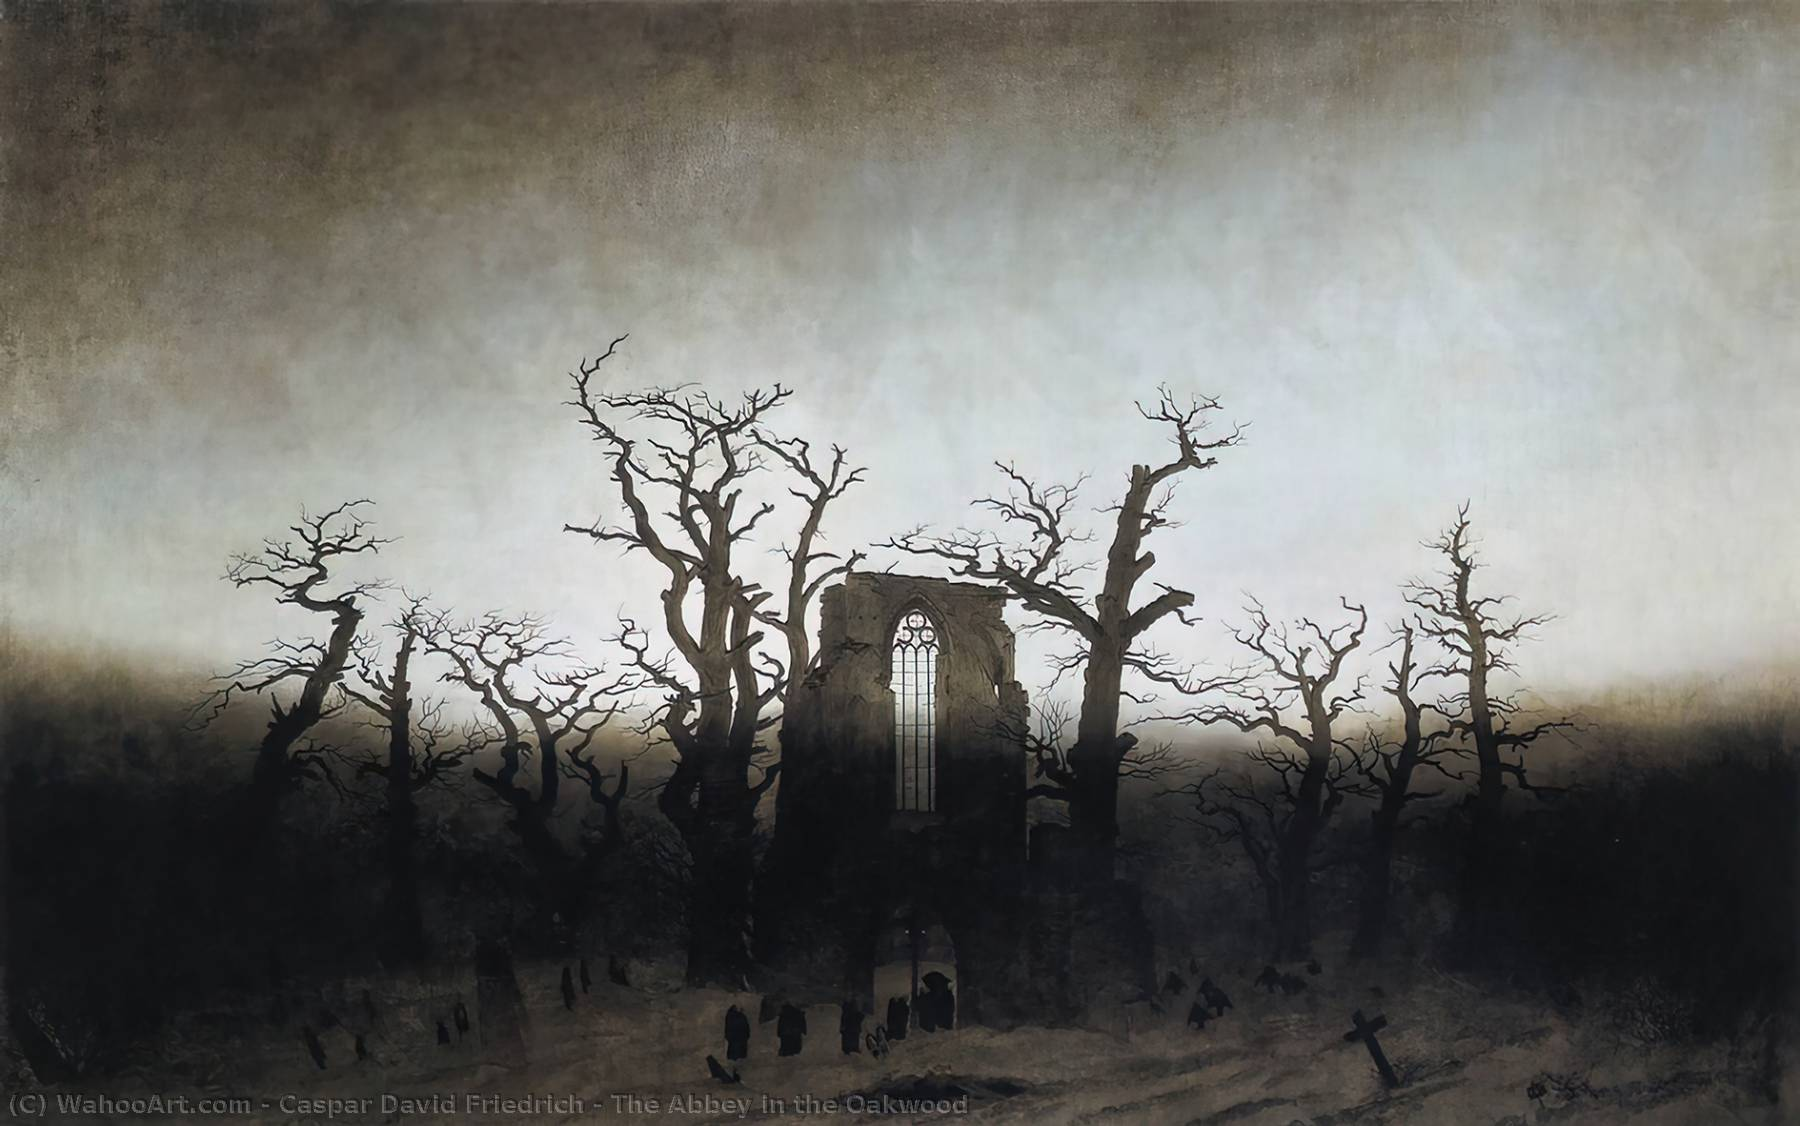 Buy Museum Art Reproductions | The Abbey in the Oakwood by Caspar David Friedrich | Most-Famous-Paintings.com